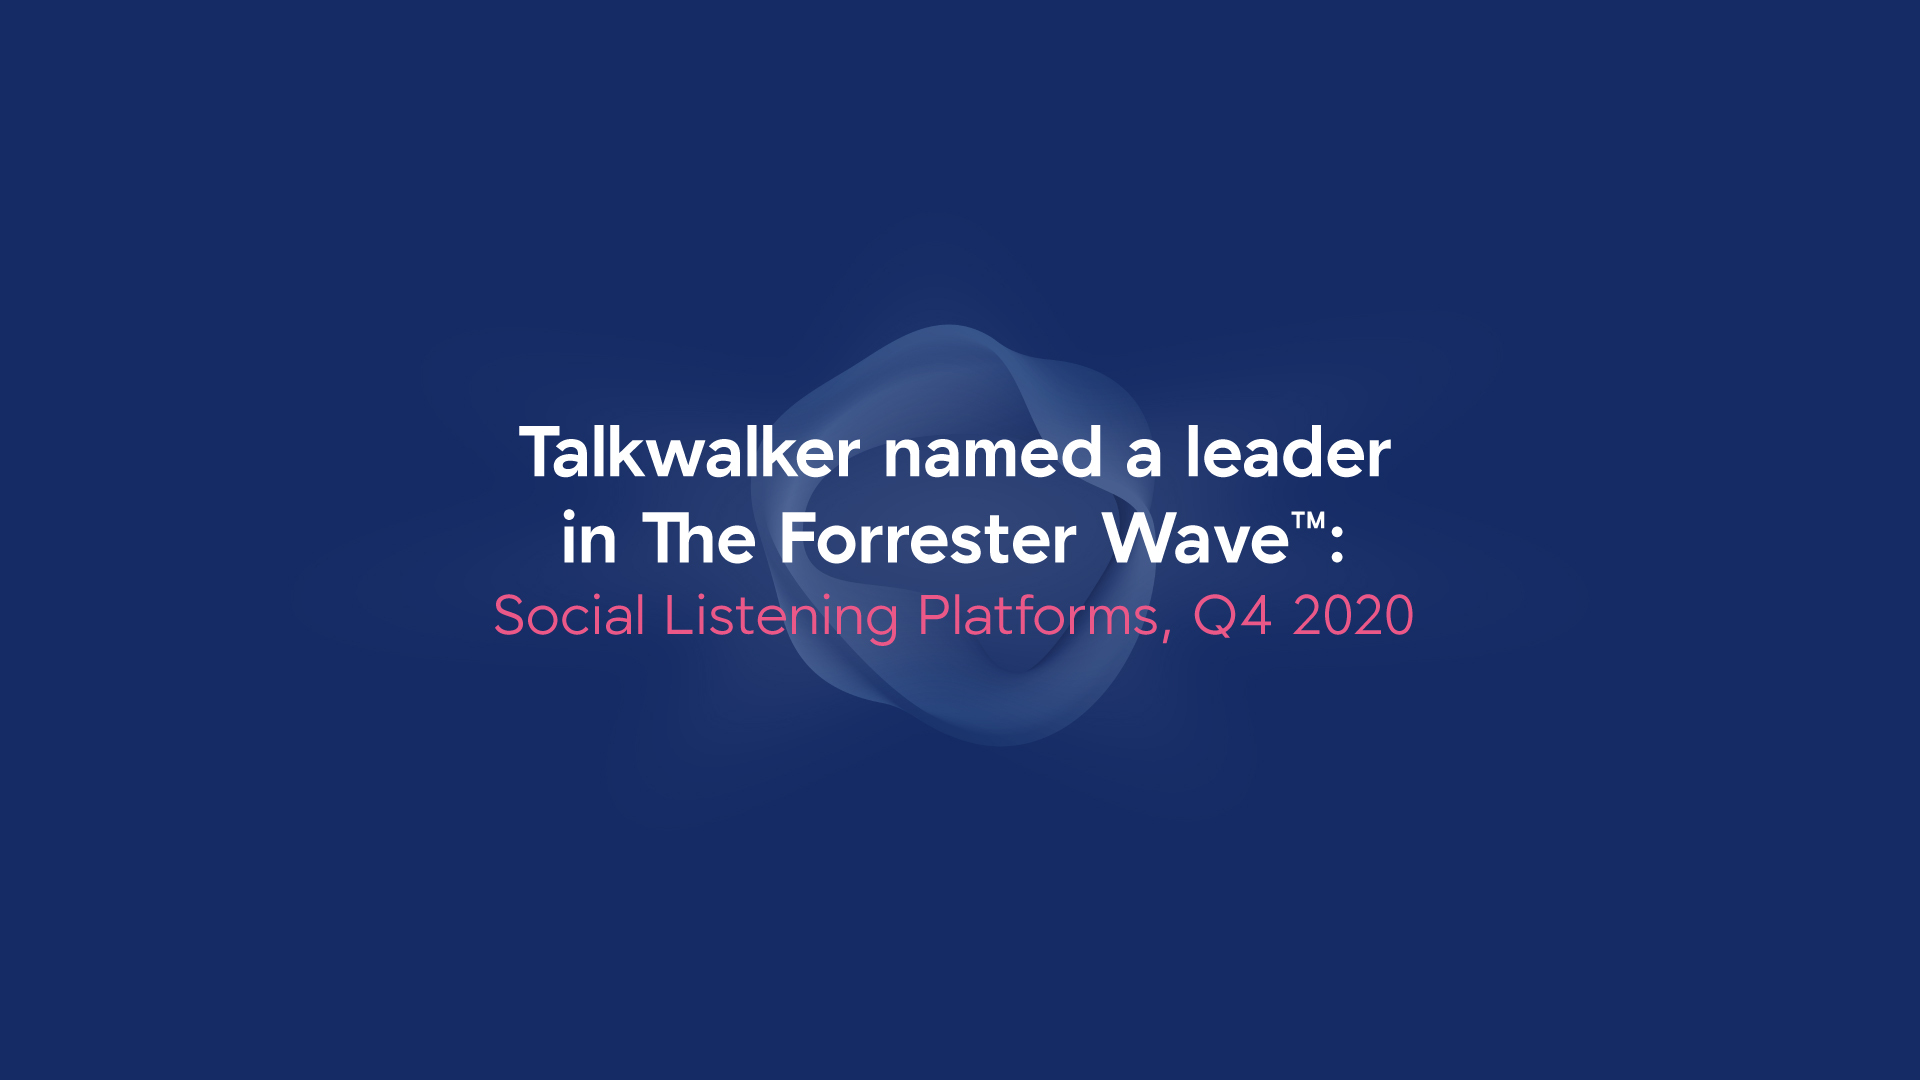 The Forrester Wave - Social Listening Platforms, Q4 2020 - Talkwalker a Leader